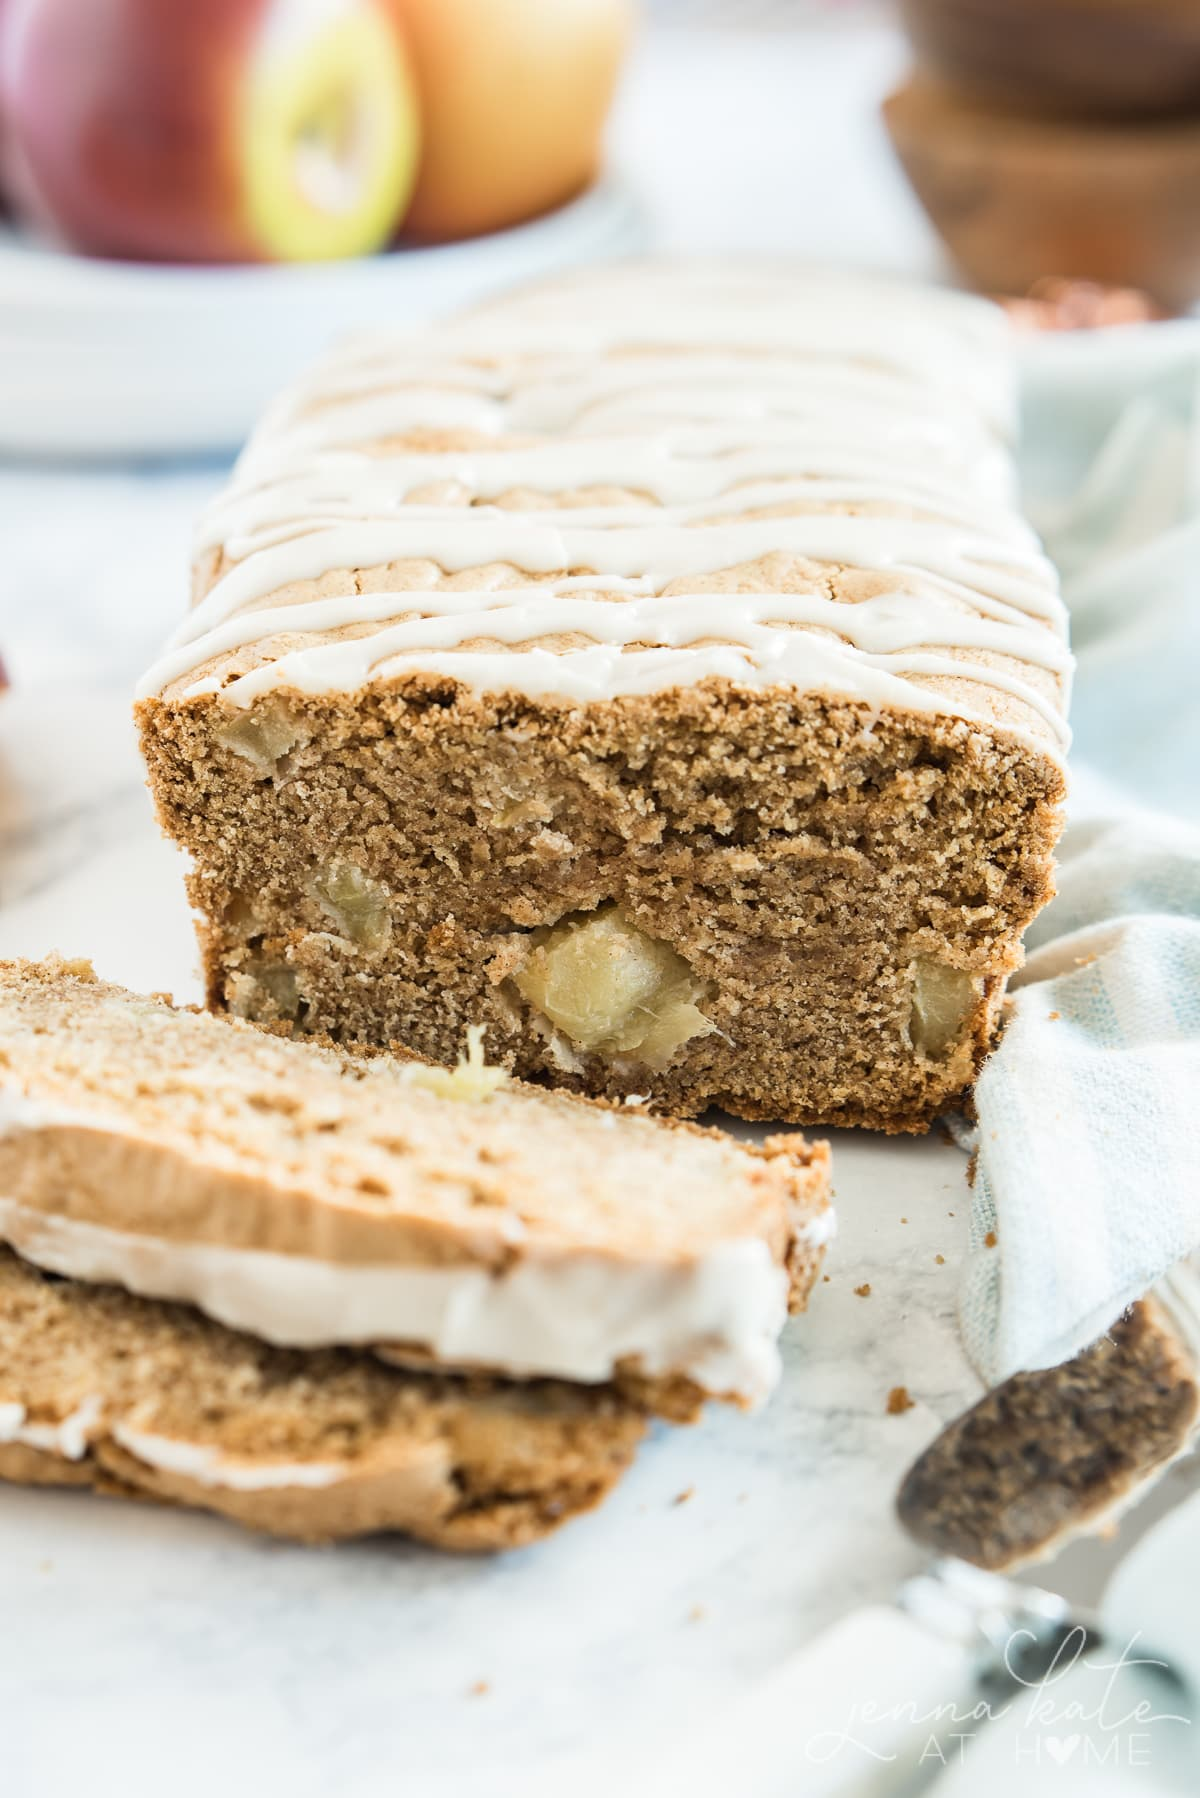 How to make an apple loaf